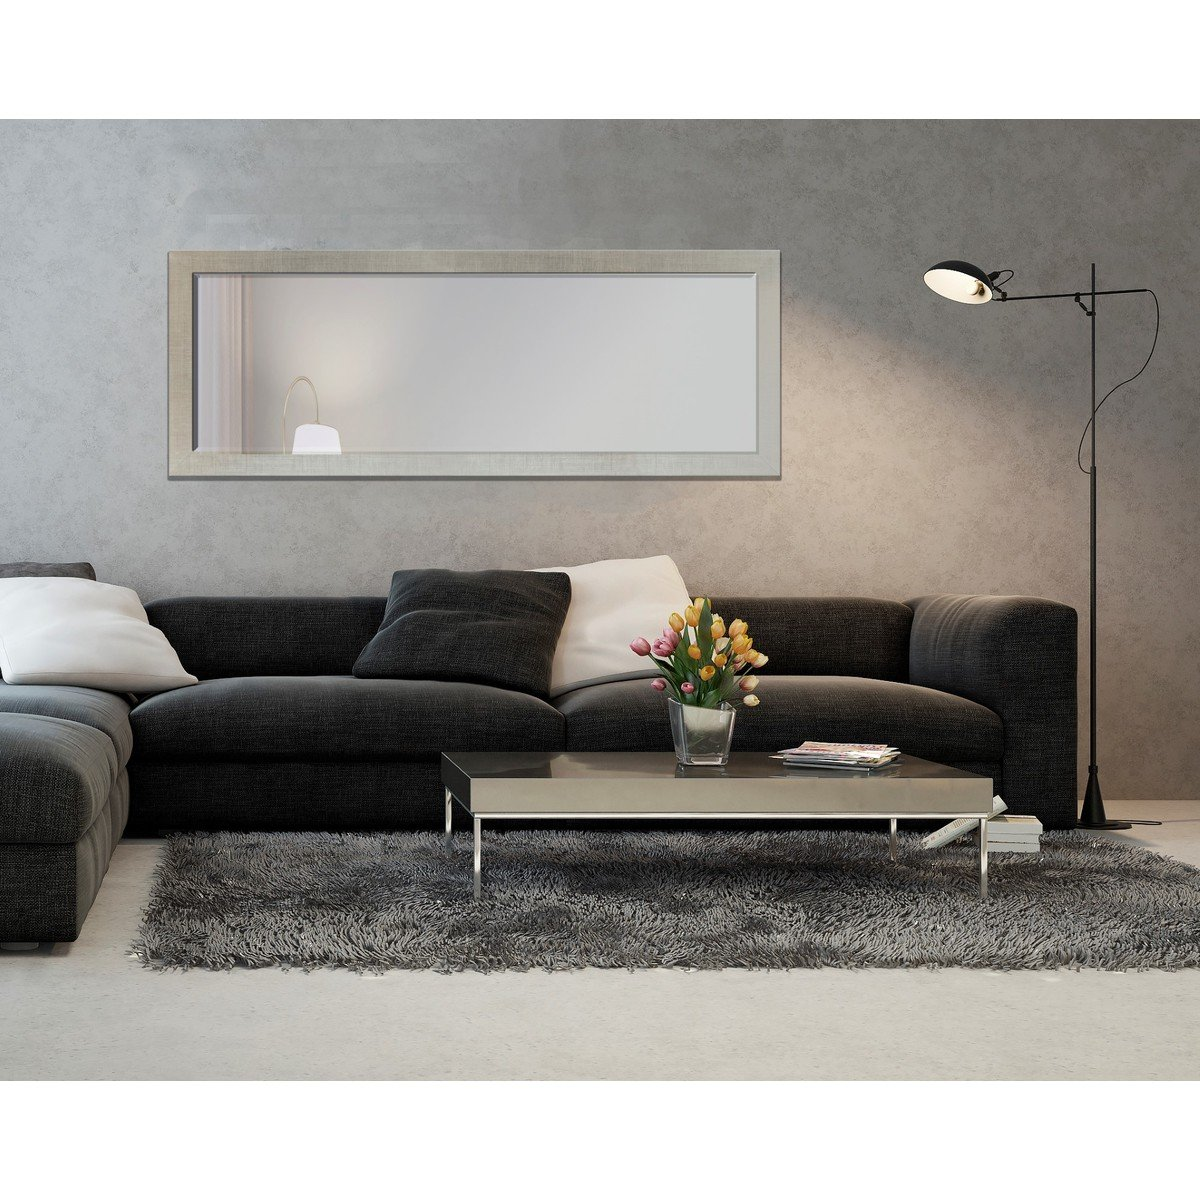 fox modern flim miroir mural 63x183cm avec cadre biseau chrome 301z50170f. Black Bedroom Furniture Sets. Home Design Ideas